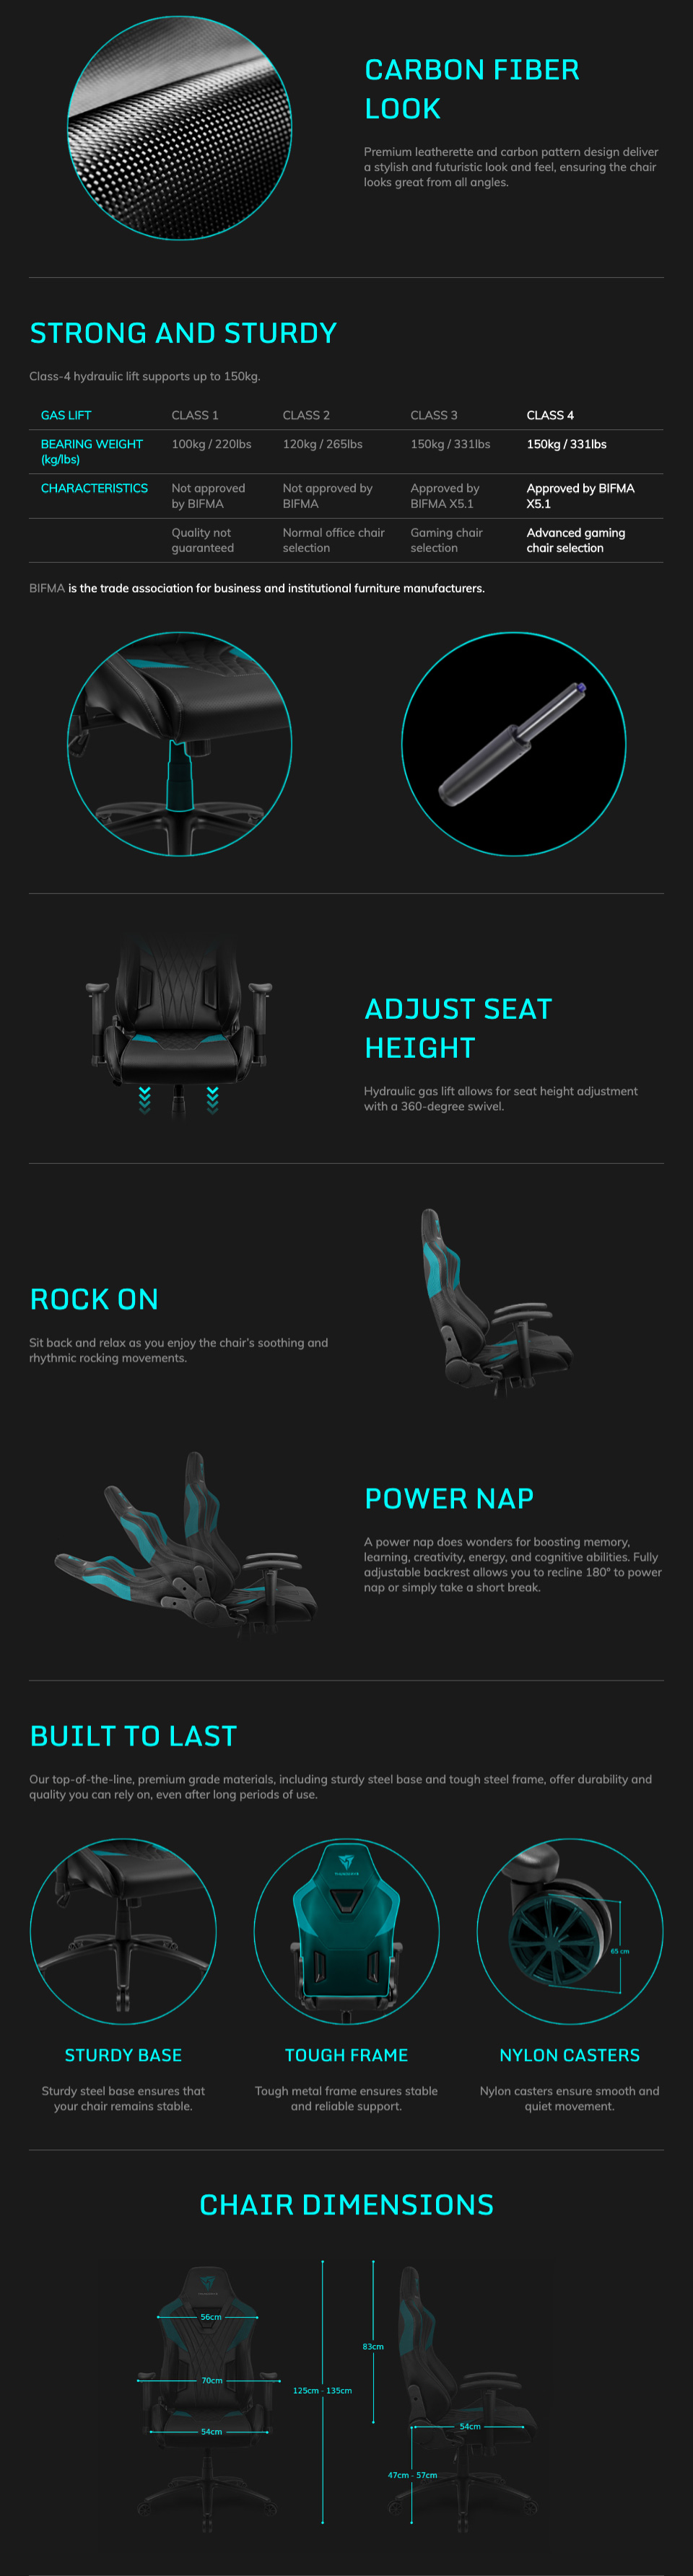 Aerocool ThunderX3 DC3 Gaming Chair Black features 2